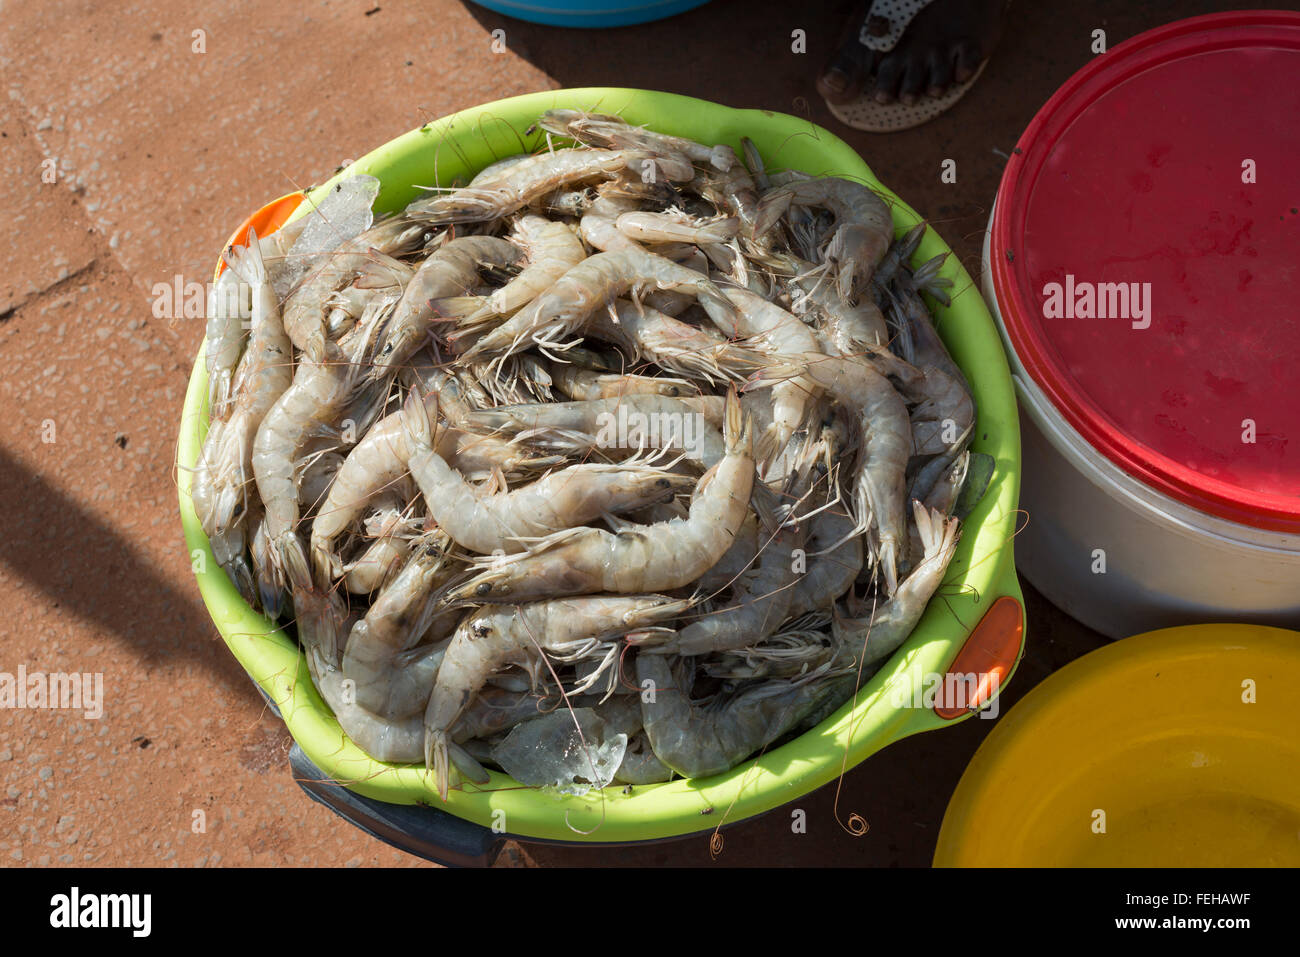 Shrimps on sale at a market in the guinea bissau capital city of shrimps on sale at a market in the guinea bissau capital city of bissau publicscrutiny Image collections